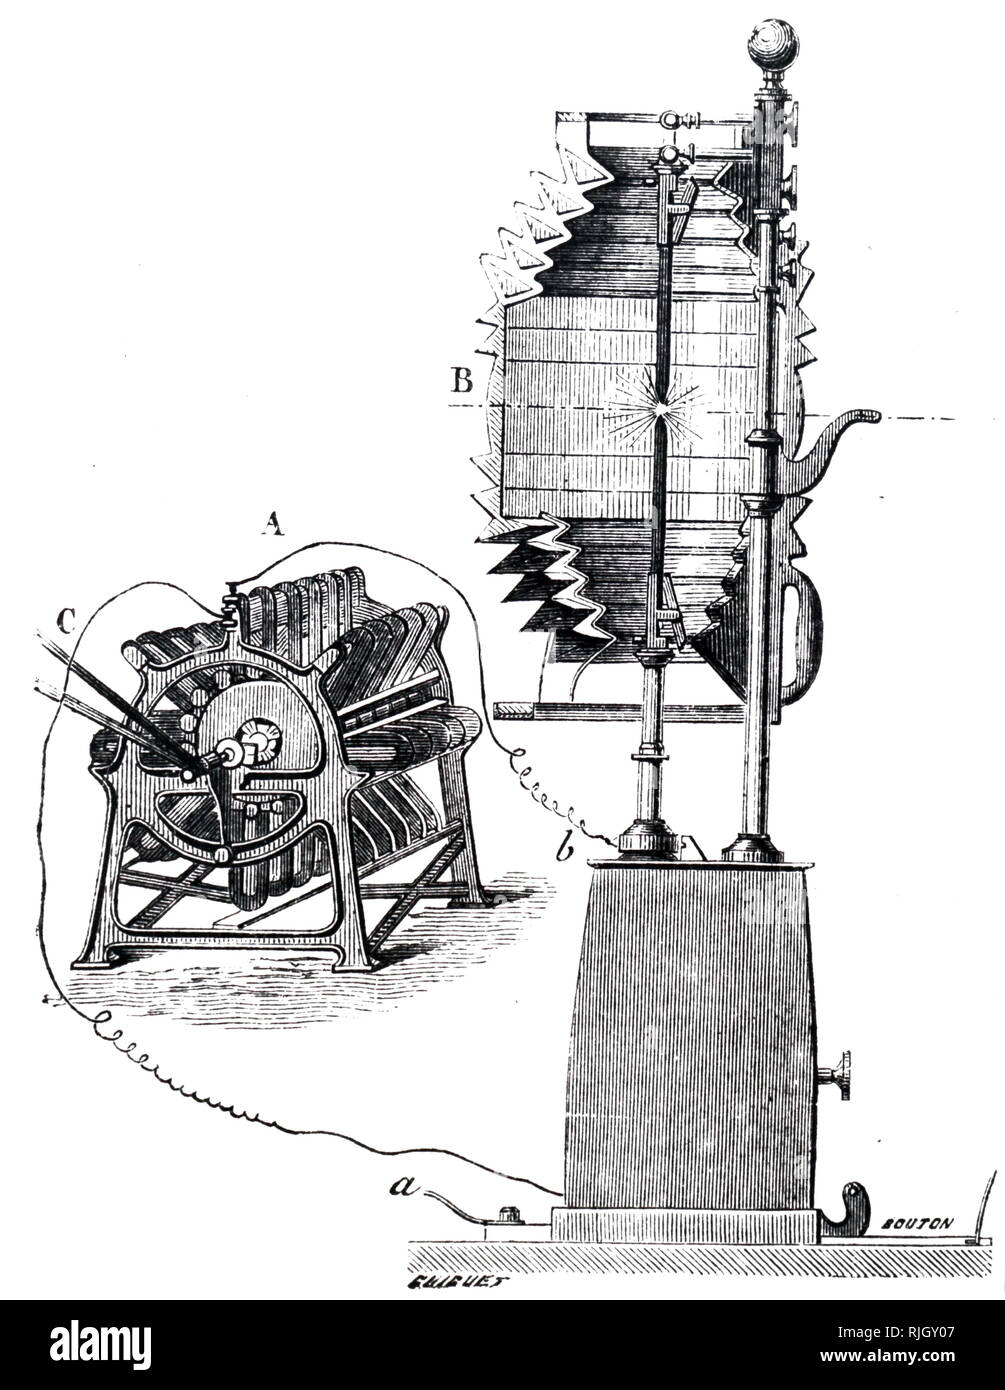 An engraving depicting the Alliance Nollet generator being used to power a carbon arc lamp. Used in lighthouses at La Heve. Dated 19th century - Stock Image